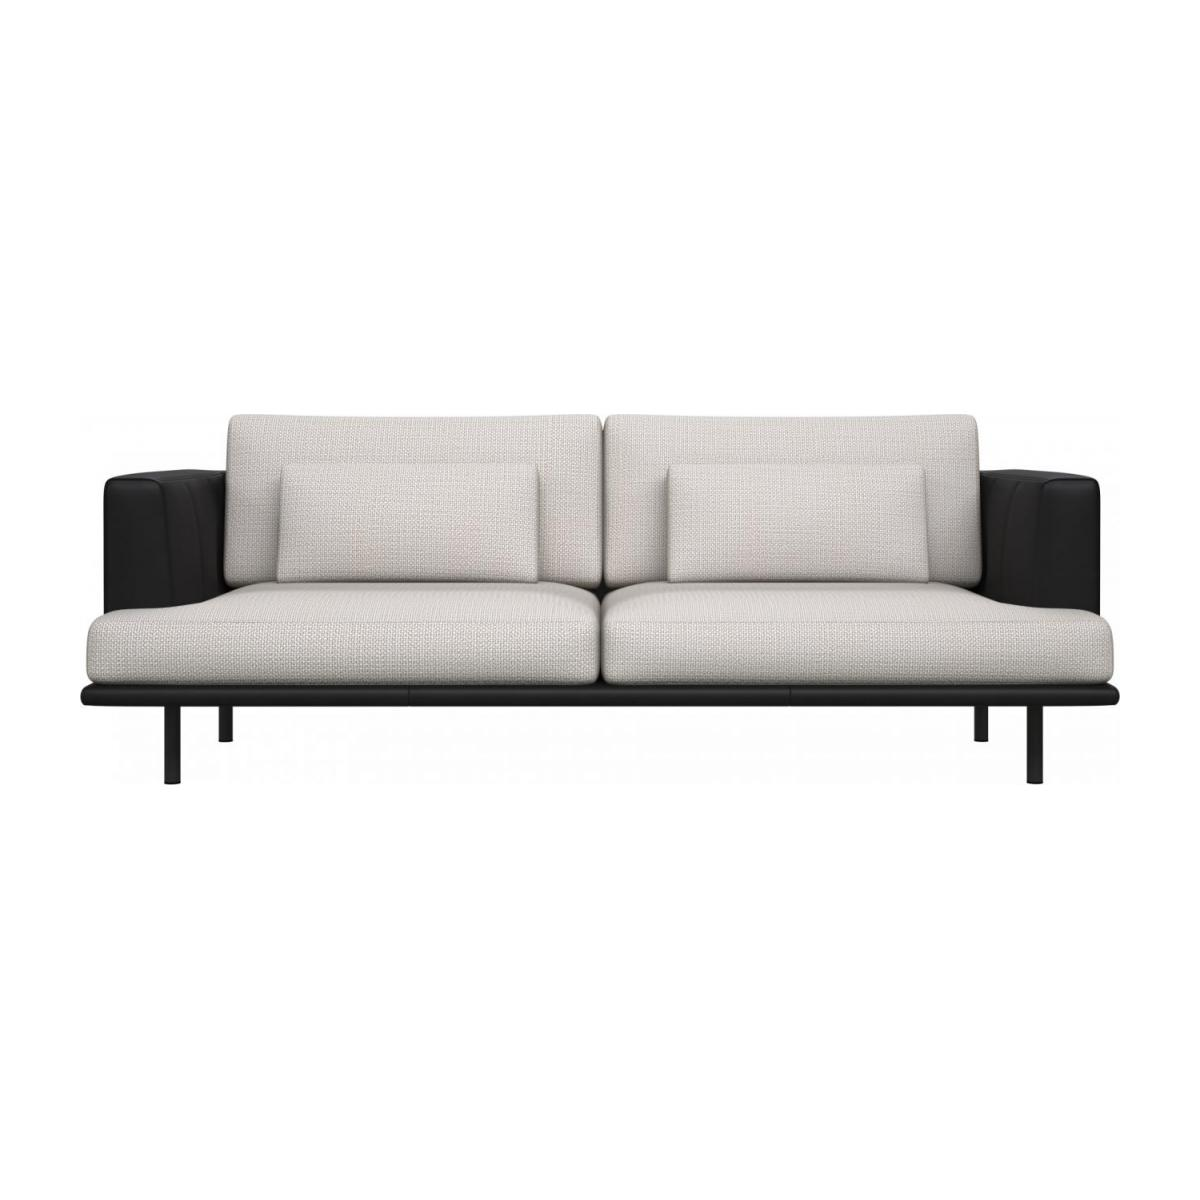 3 seater sofa in Fasoli fabric, snow white with base and armrests in black leather n°2